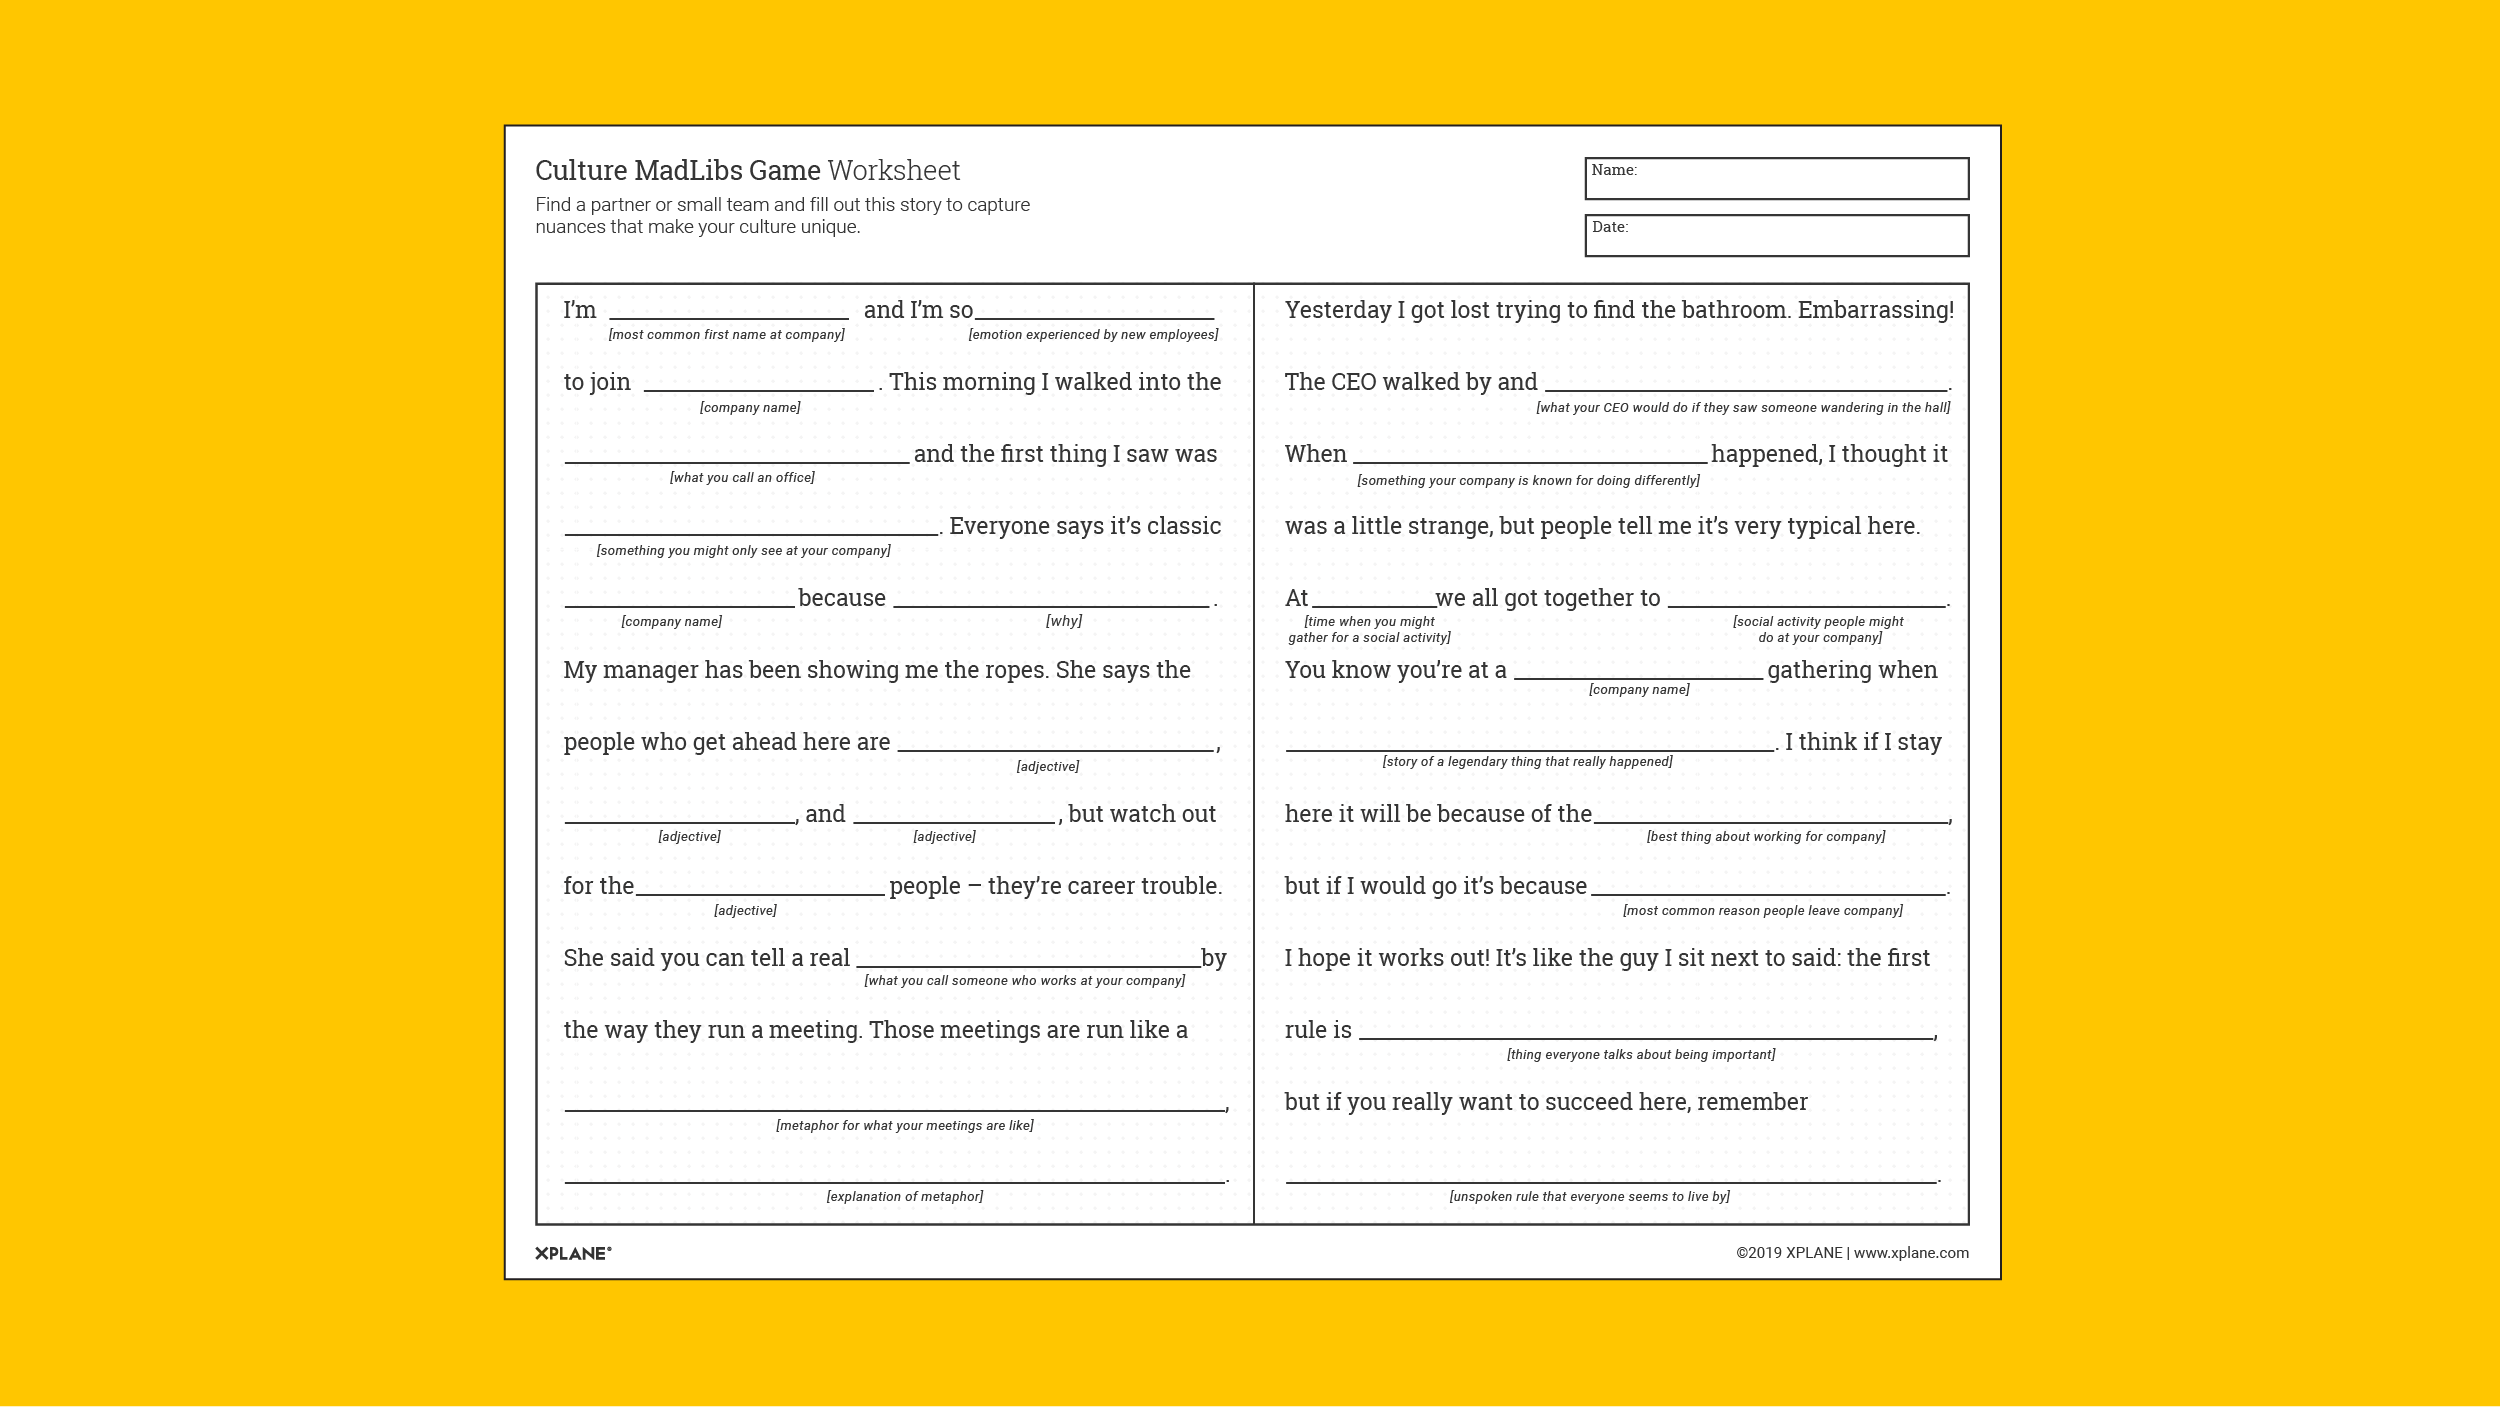 Culture MadLibs Worksheet